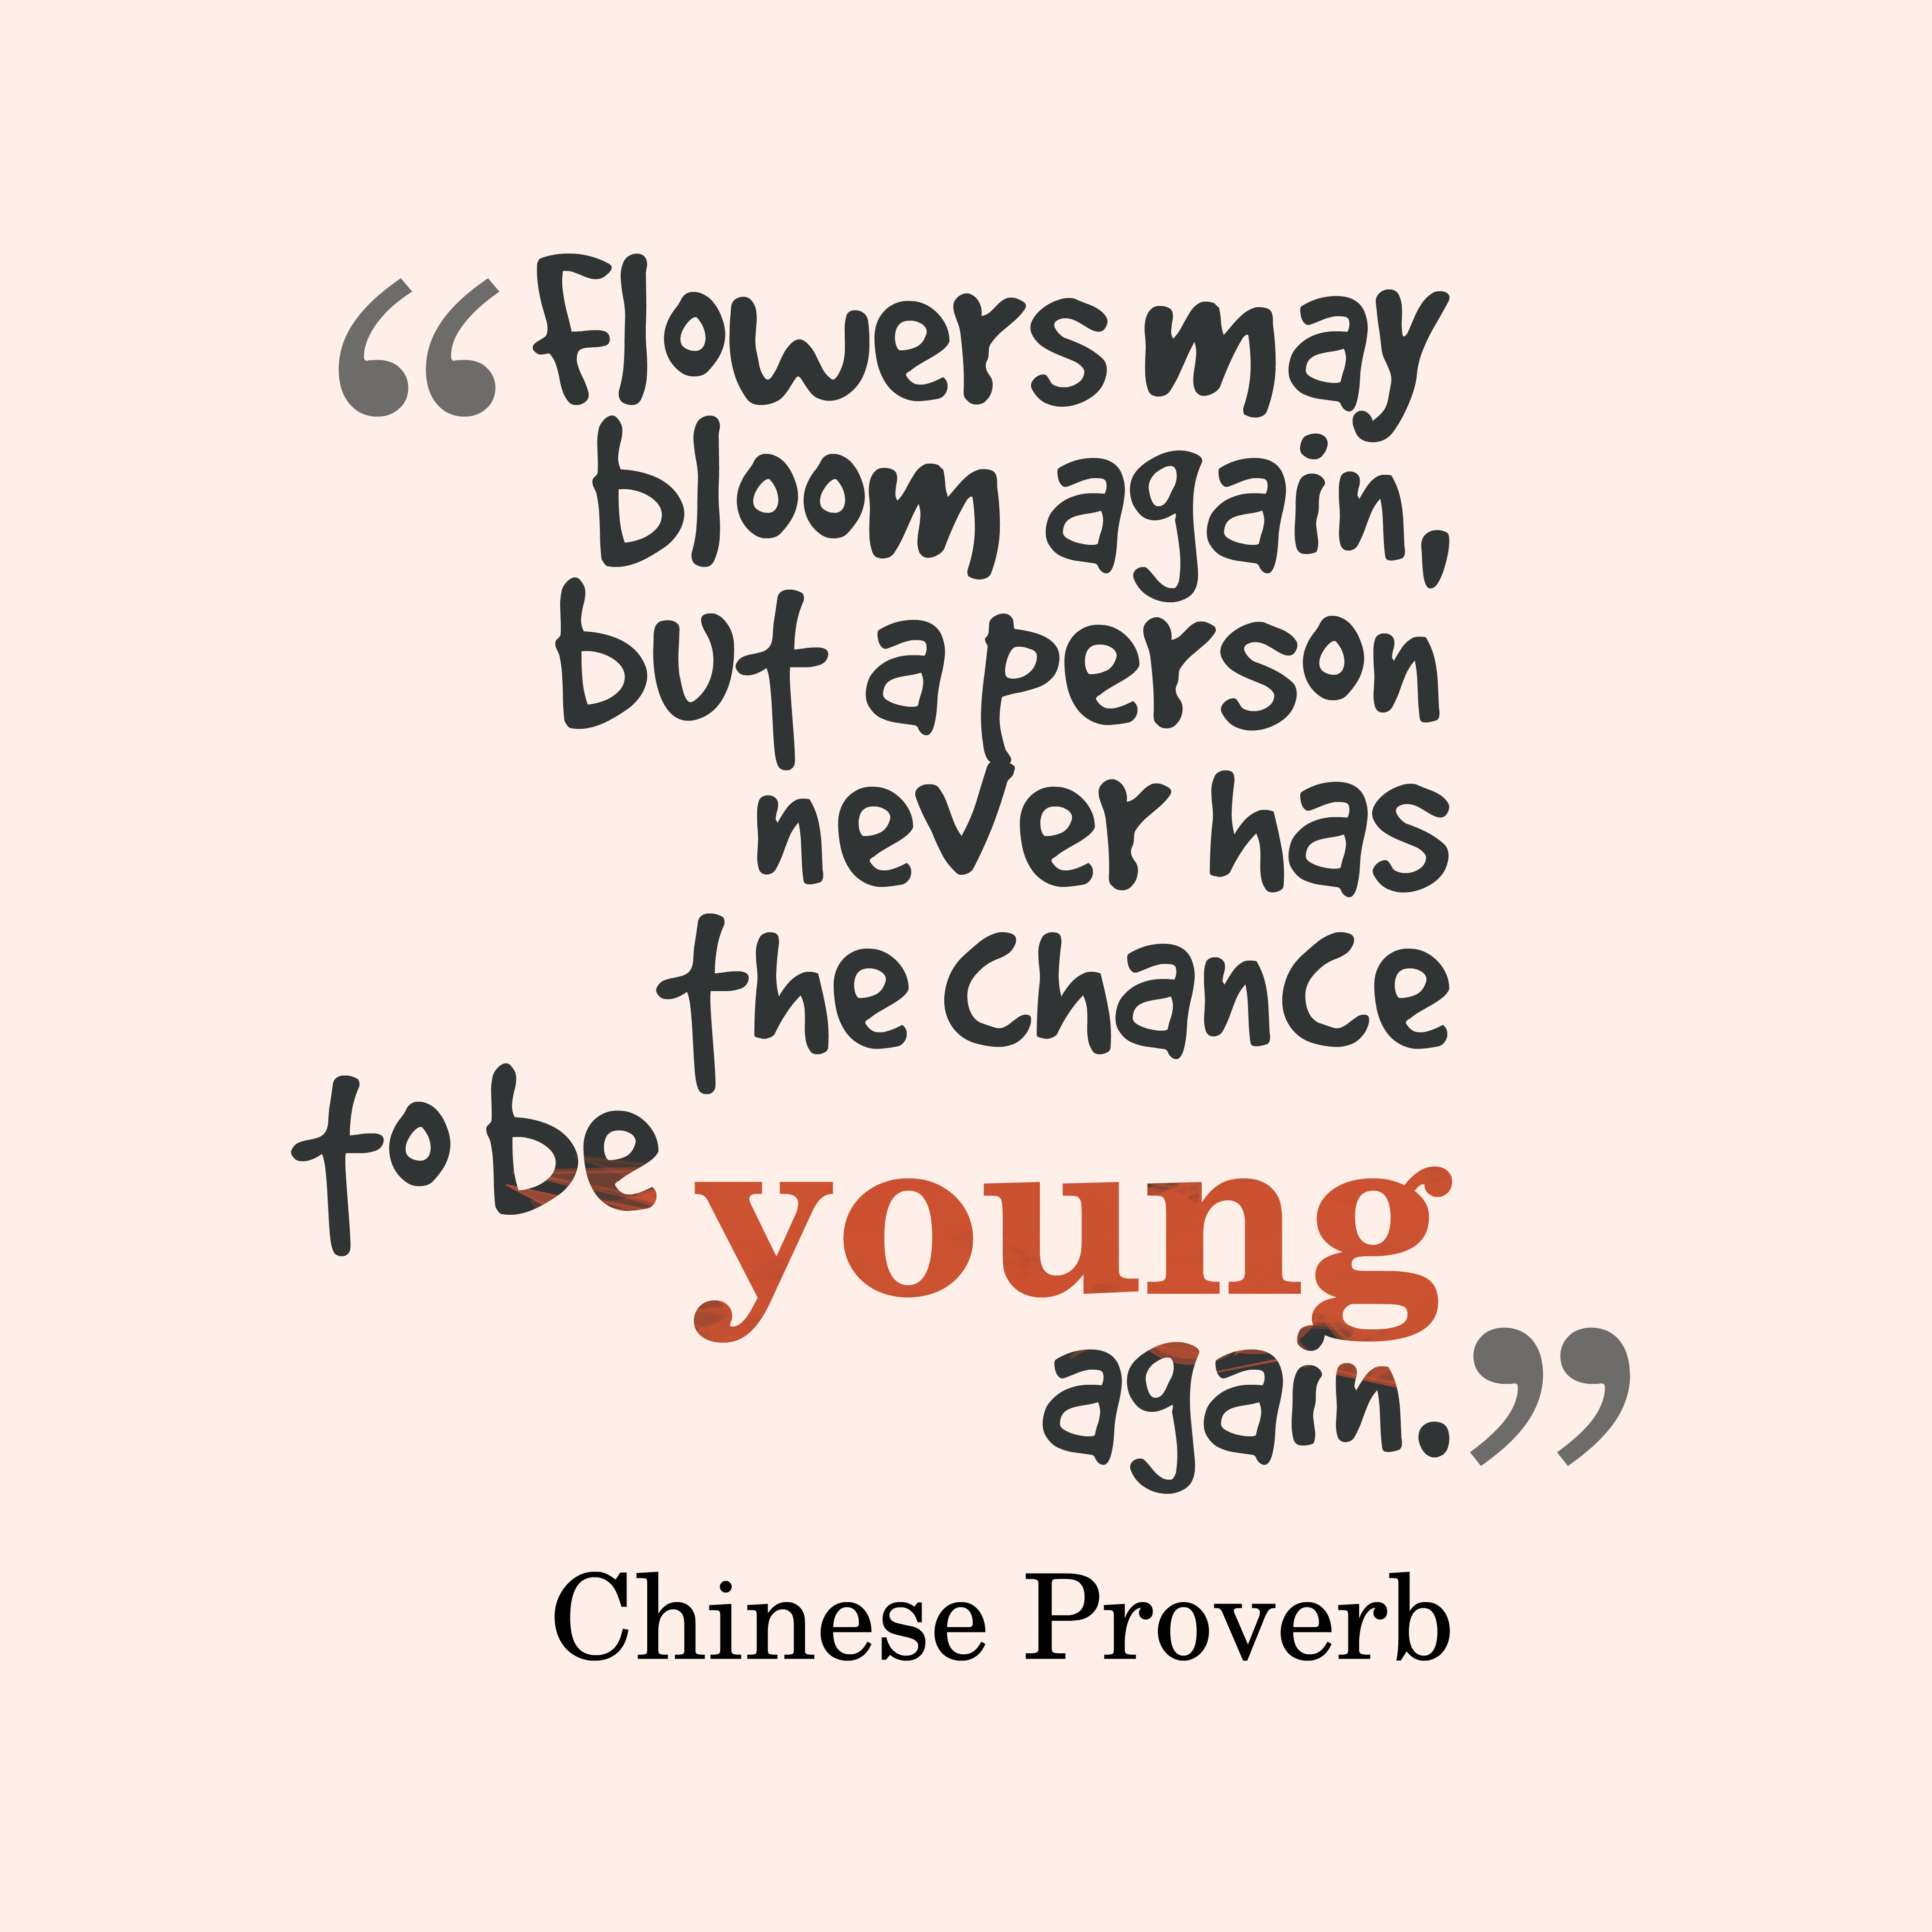 picture chinese proverb about time